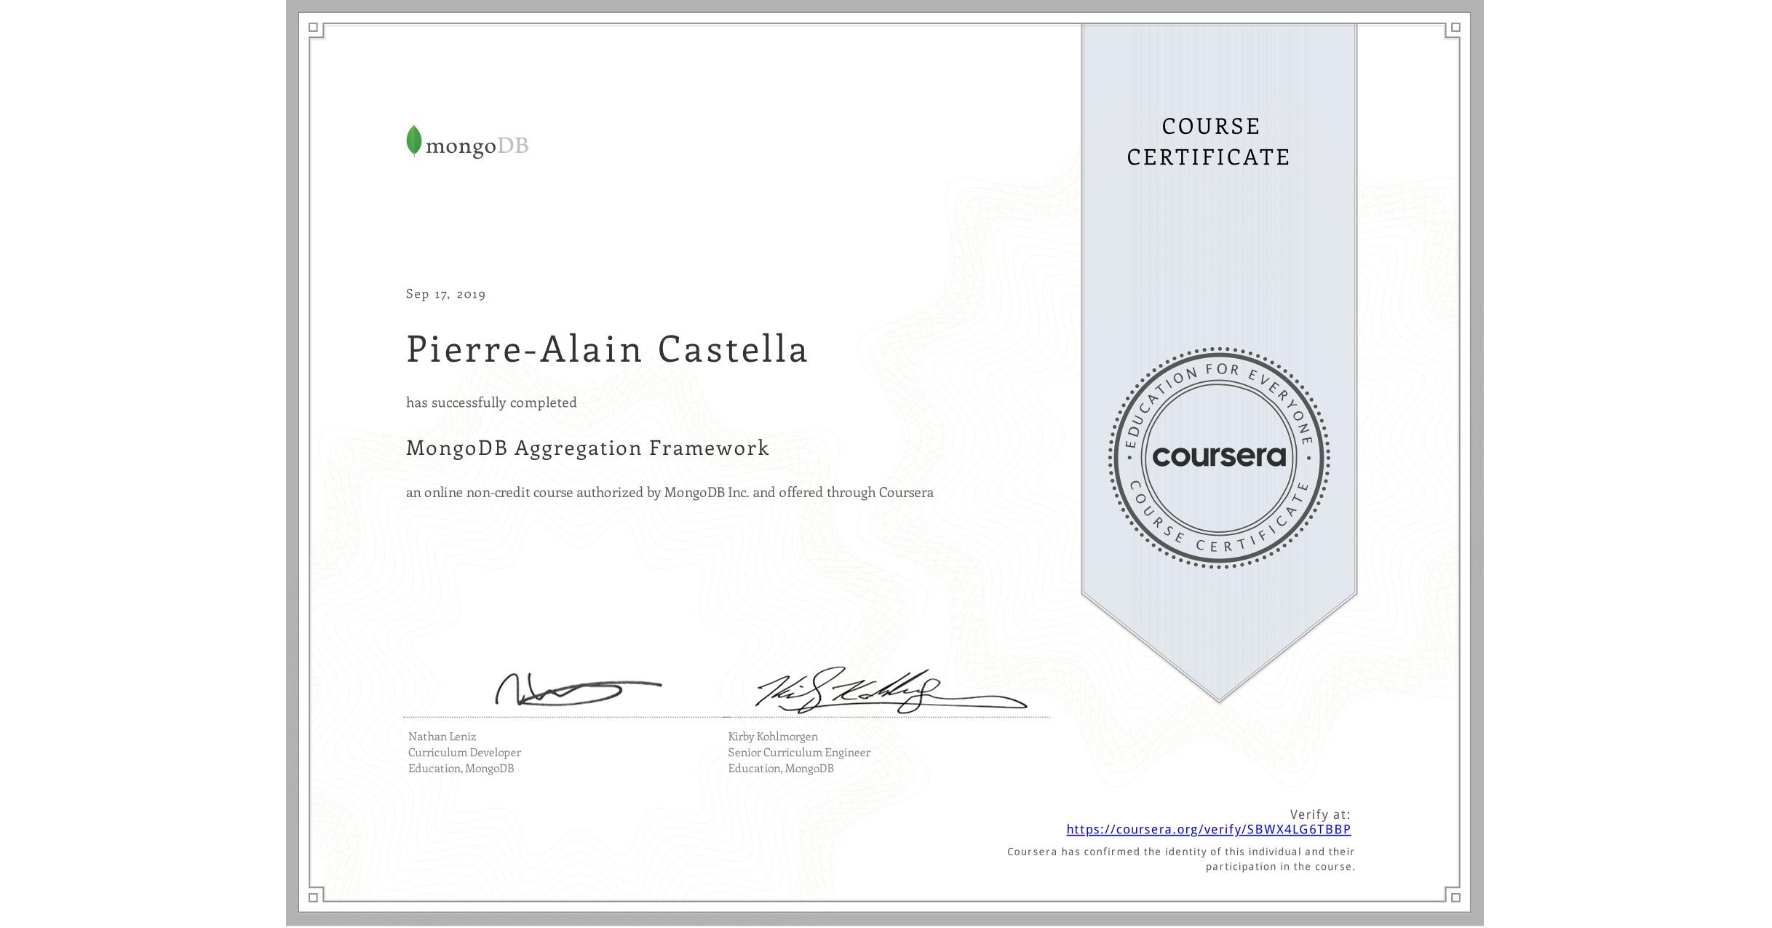 View certificate for Pierre-Alain Castella, MongoDB Aggregation Framework, an online non-credit course authorized by MongoDB Inc. and offered through Coursera